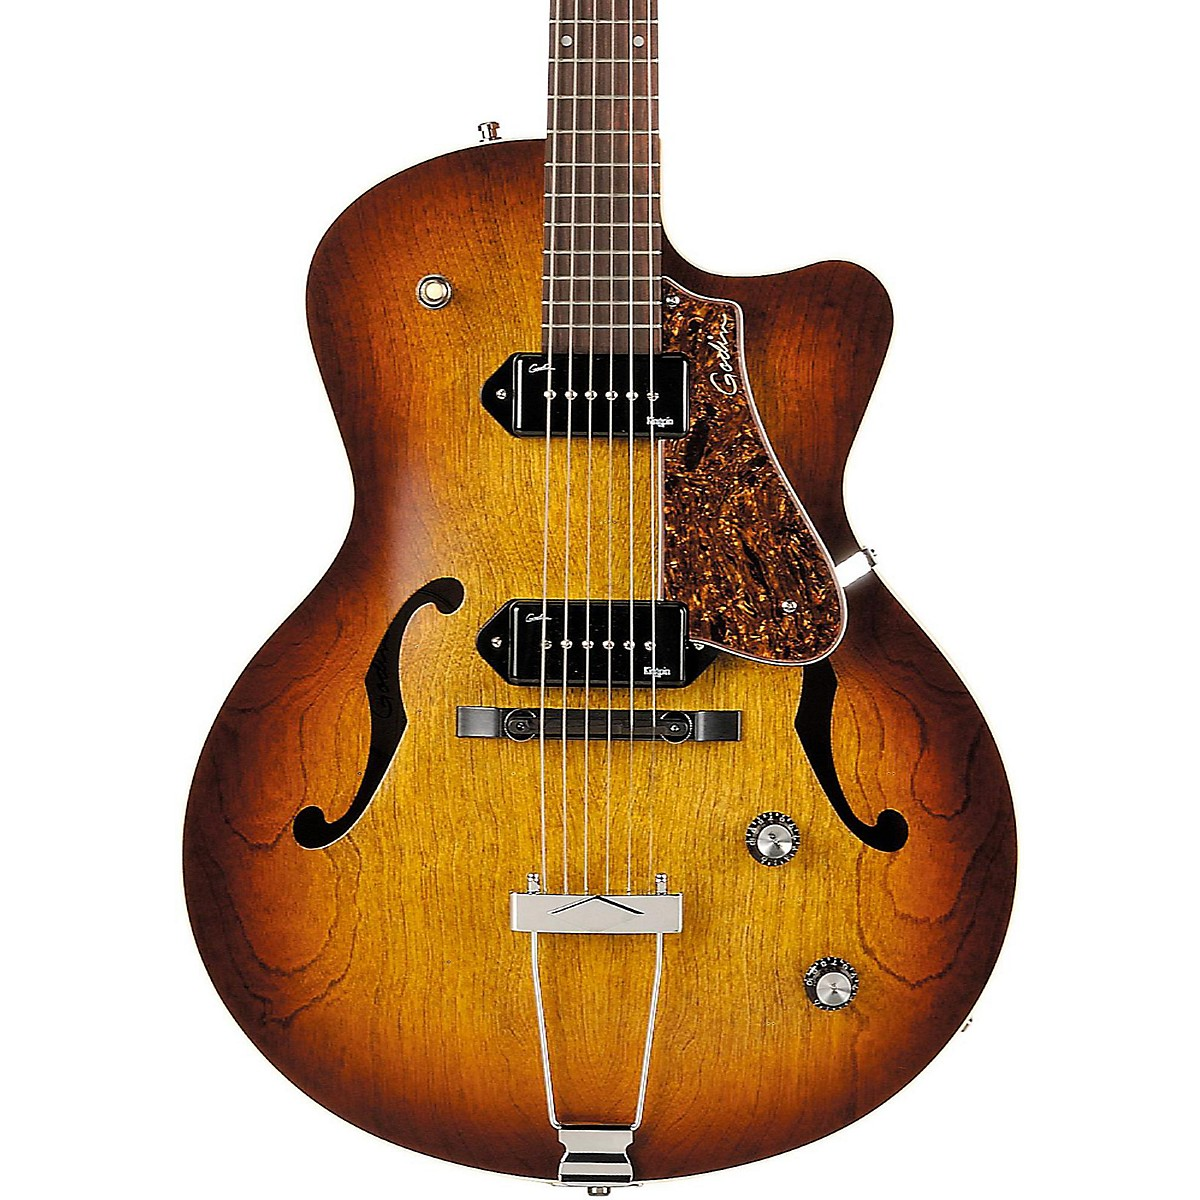 Godin 5th Avenue CW Kingpin II Archtop Electric Guitar